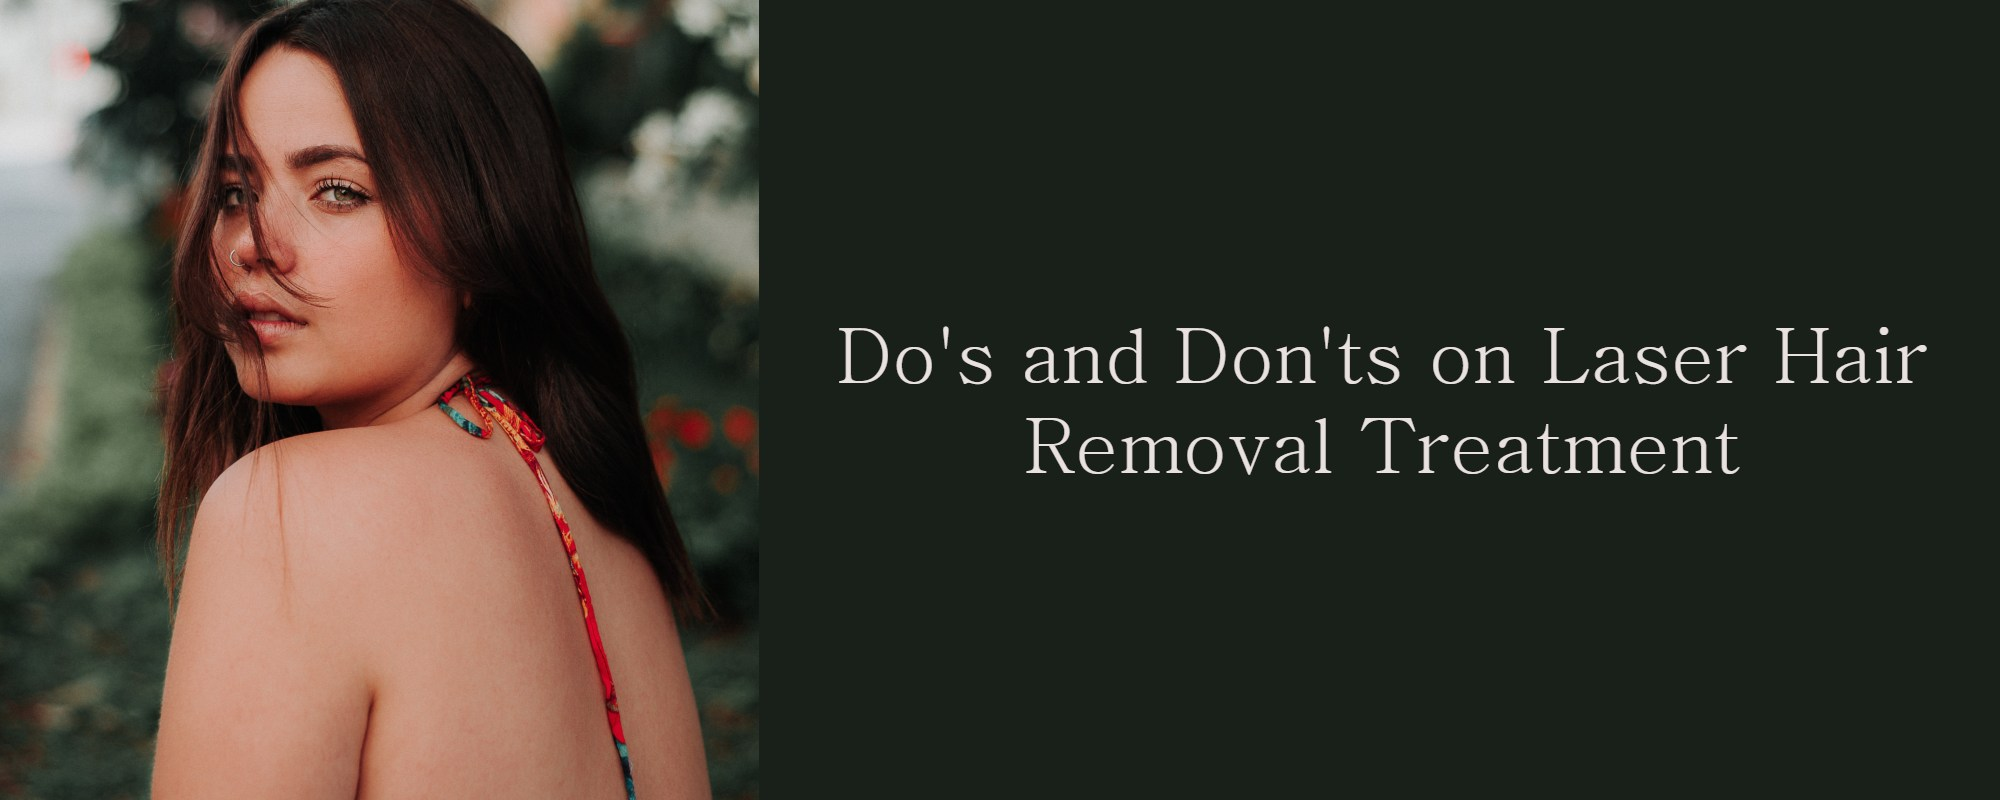 laser hair removal treatment in Melbourne